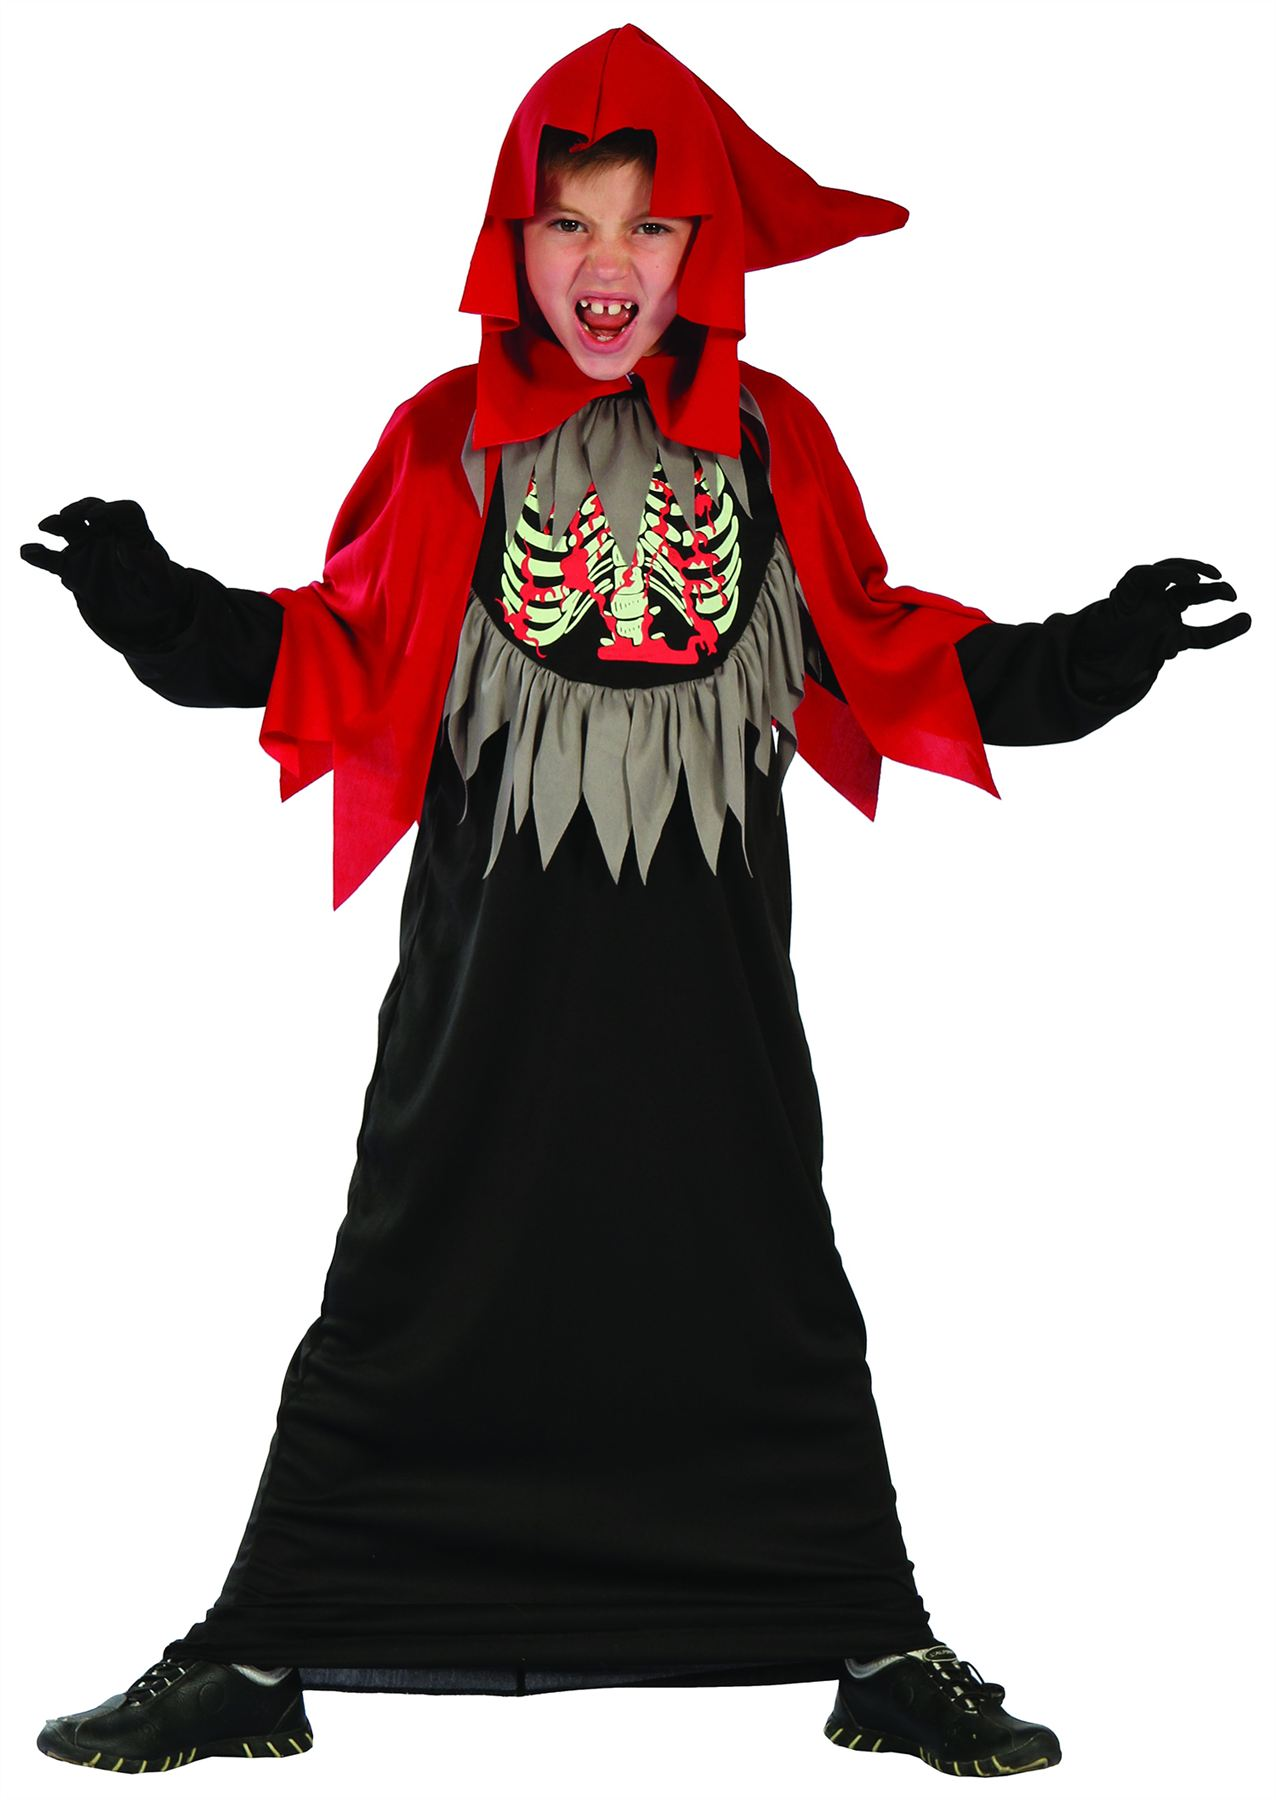 KIDS BOYS FANCY PARTY COSTUME DRESS OUTFIT HALLOWEEN ...